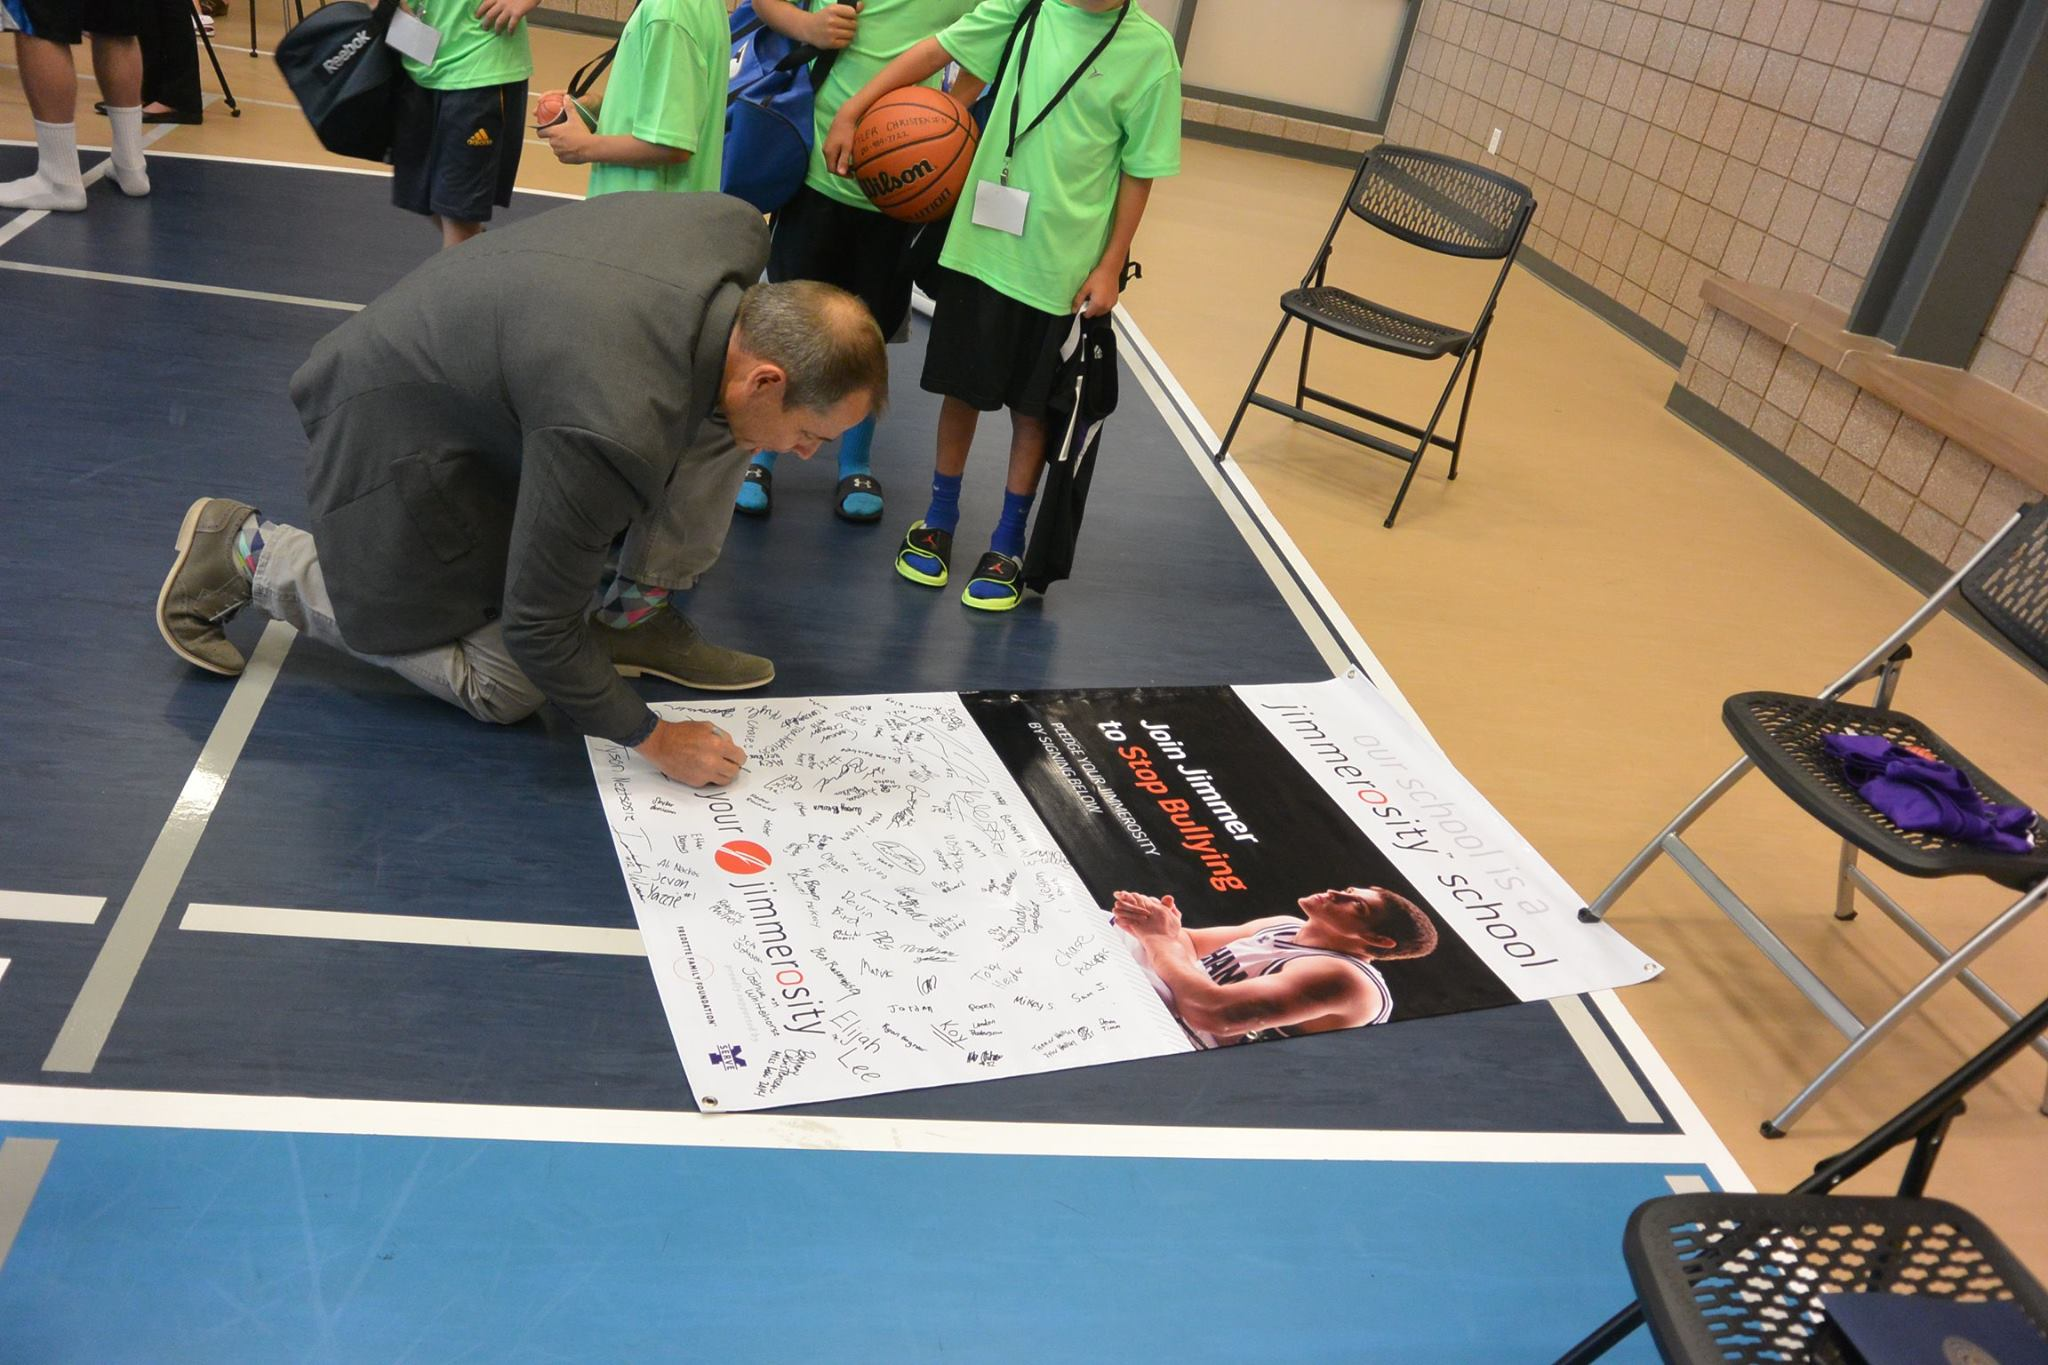 Mayor John Curtis joins the campers in signing a pledge to stand up against bullying at all times.